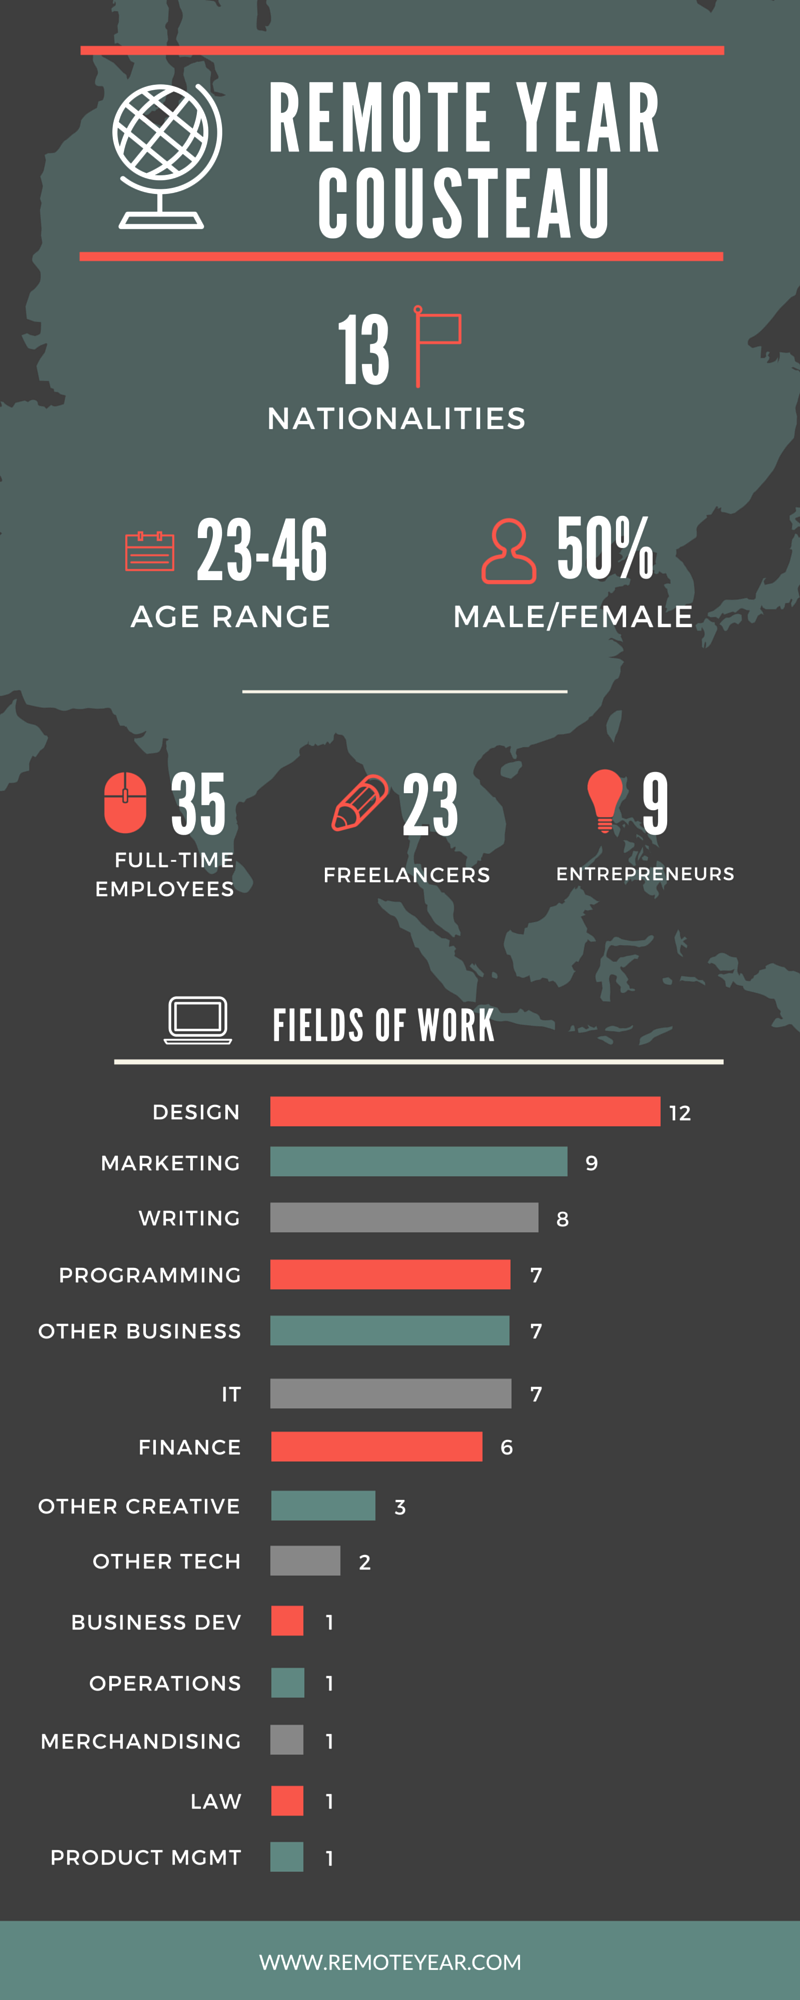 Infographic created by Heather, marketing lead at Remote Year